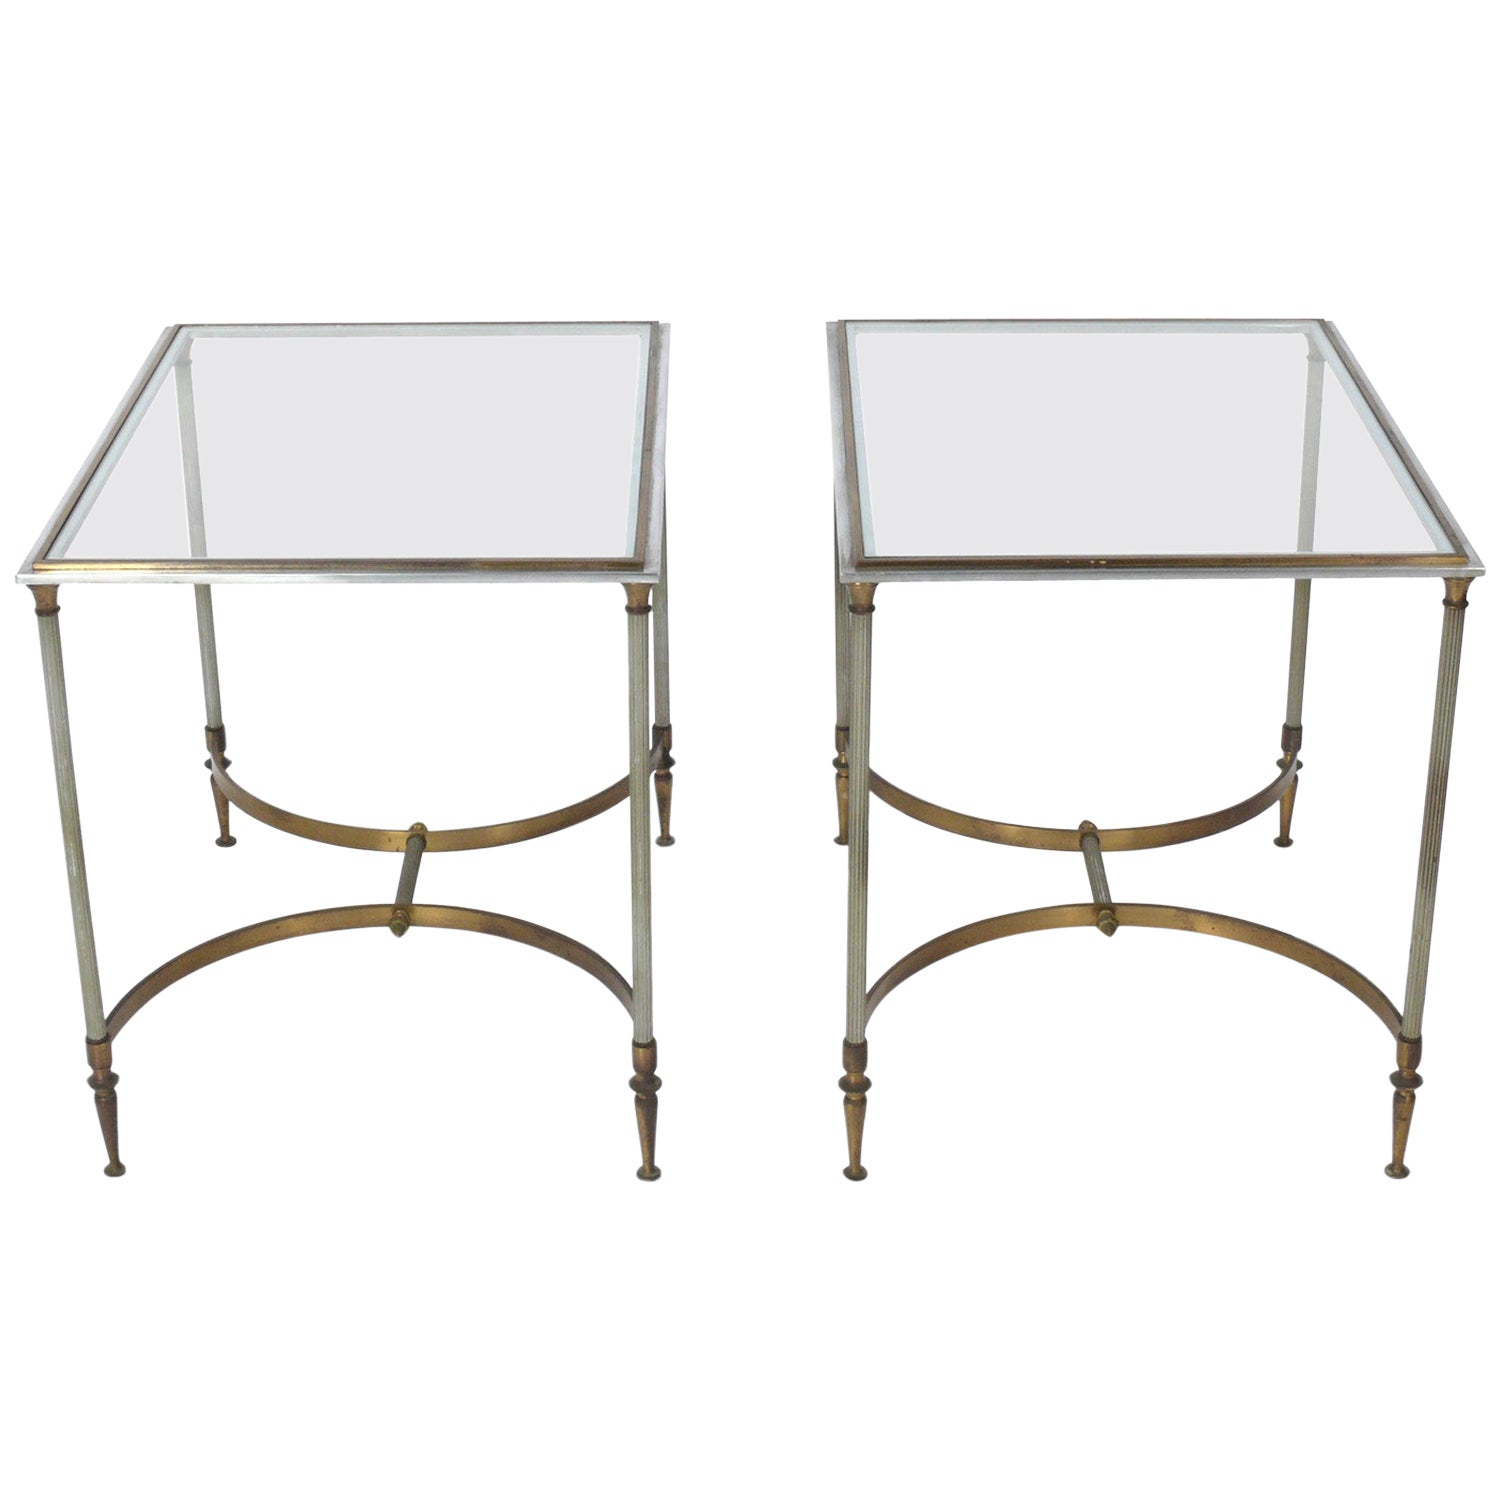 Pair of Maison Jansen Style End Tables or Nightstands